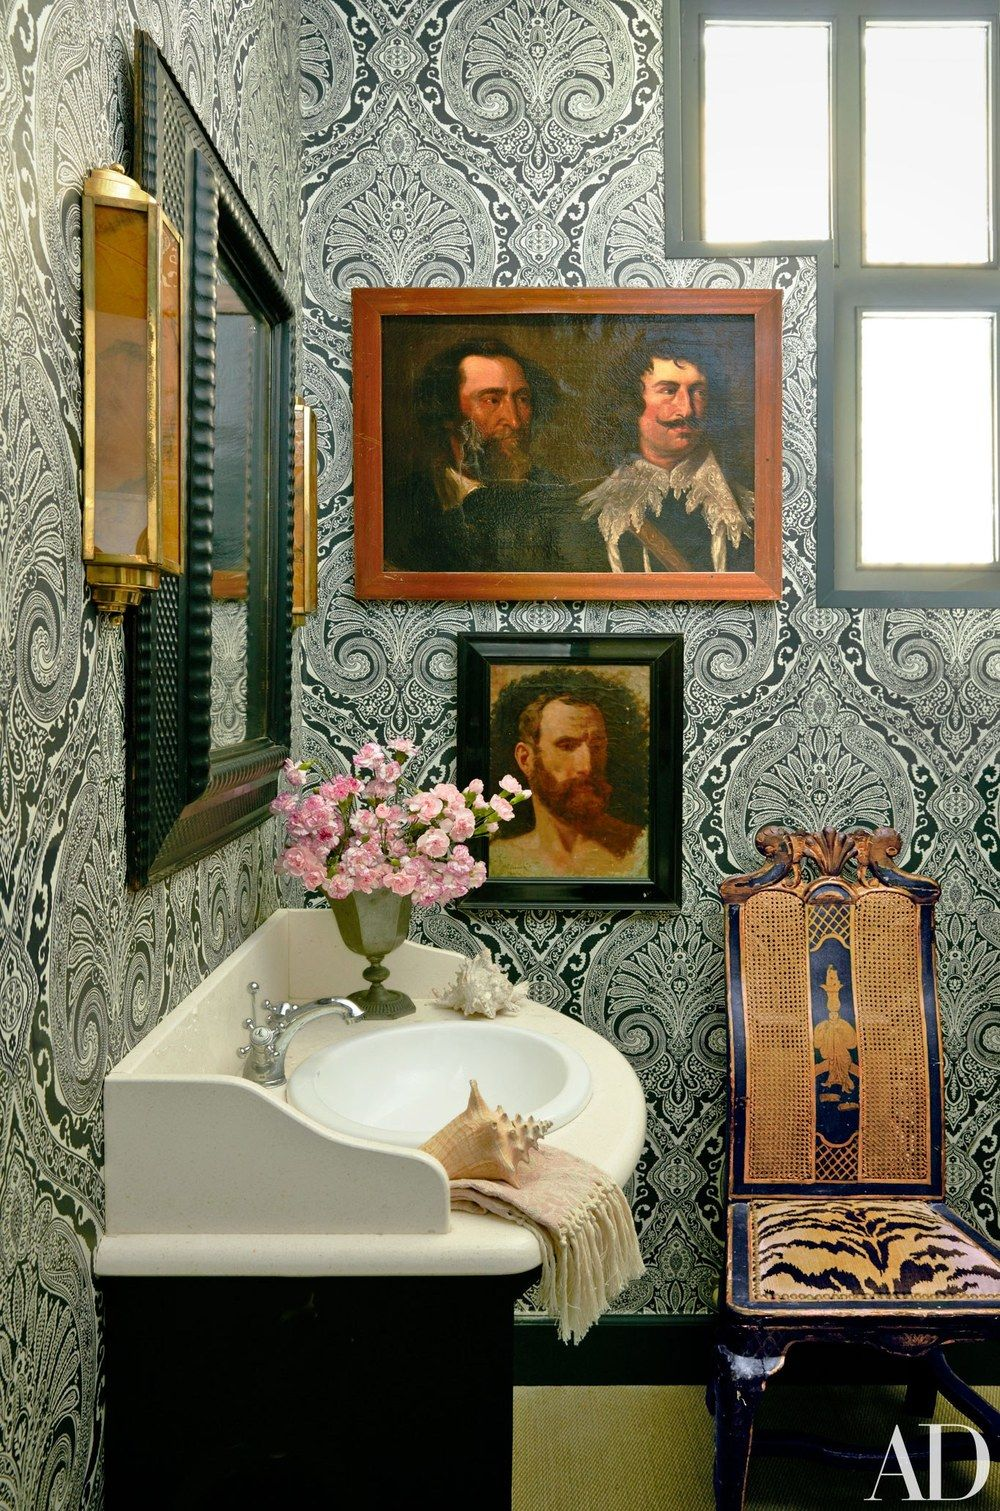 Decorating with framed paintings